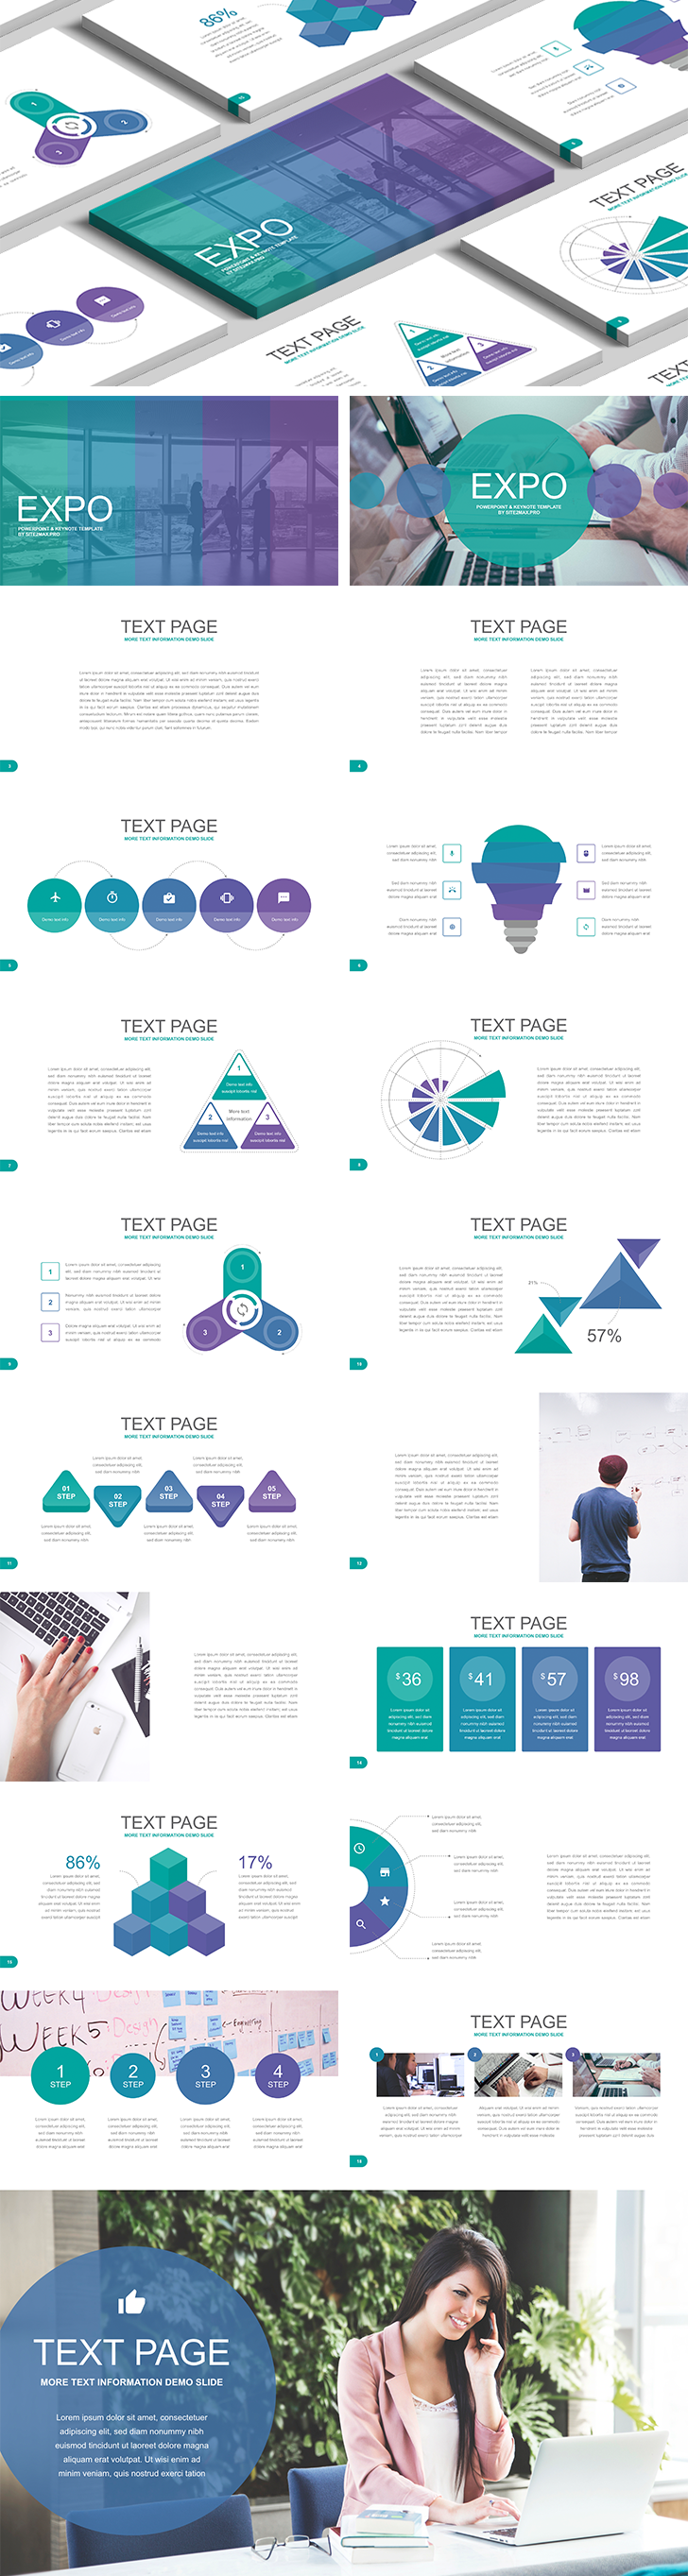 Expo Free Keynote Template  Free Download Now  Keynote